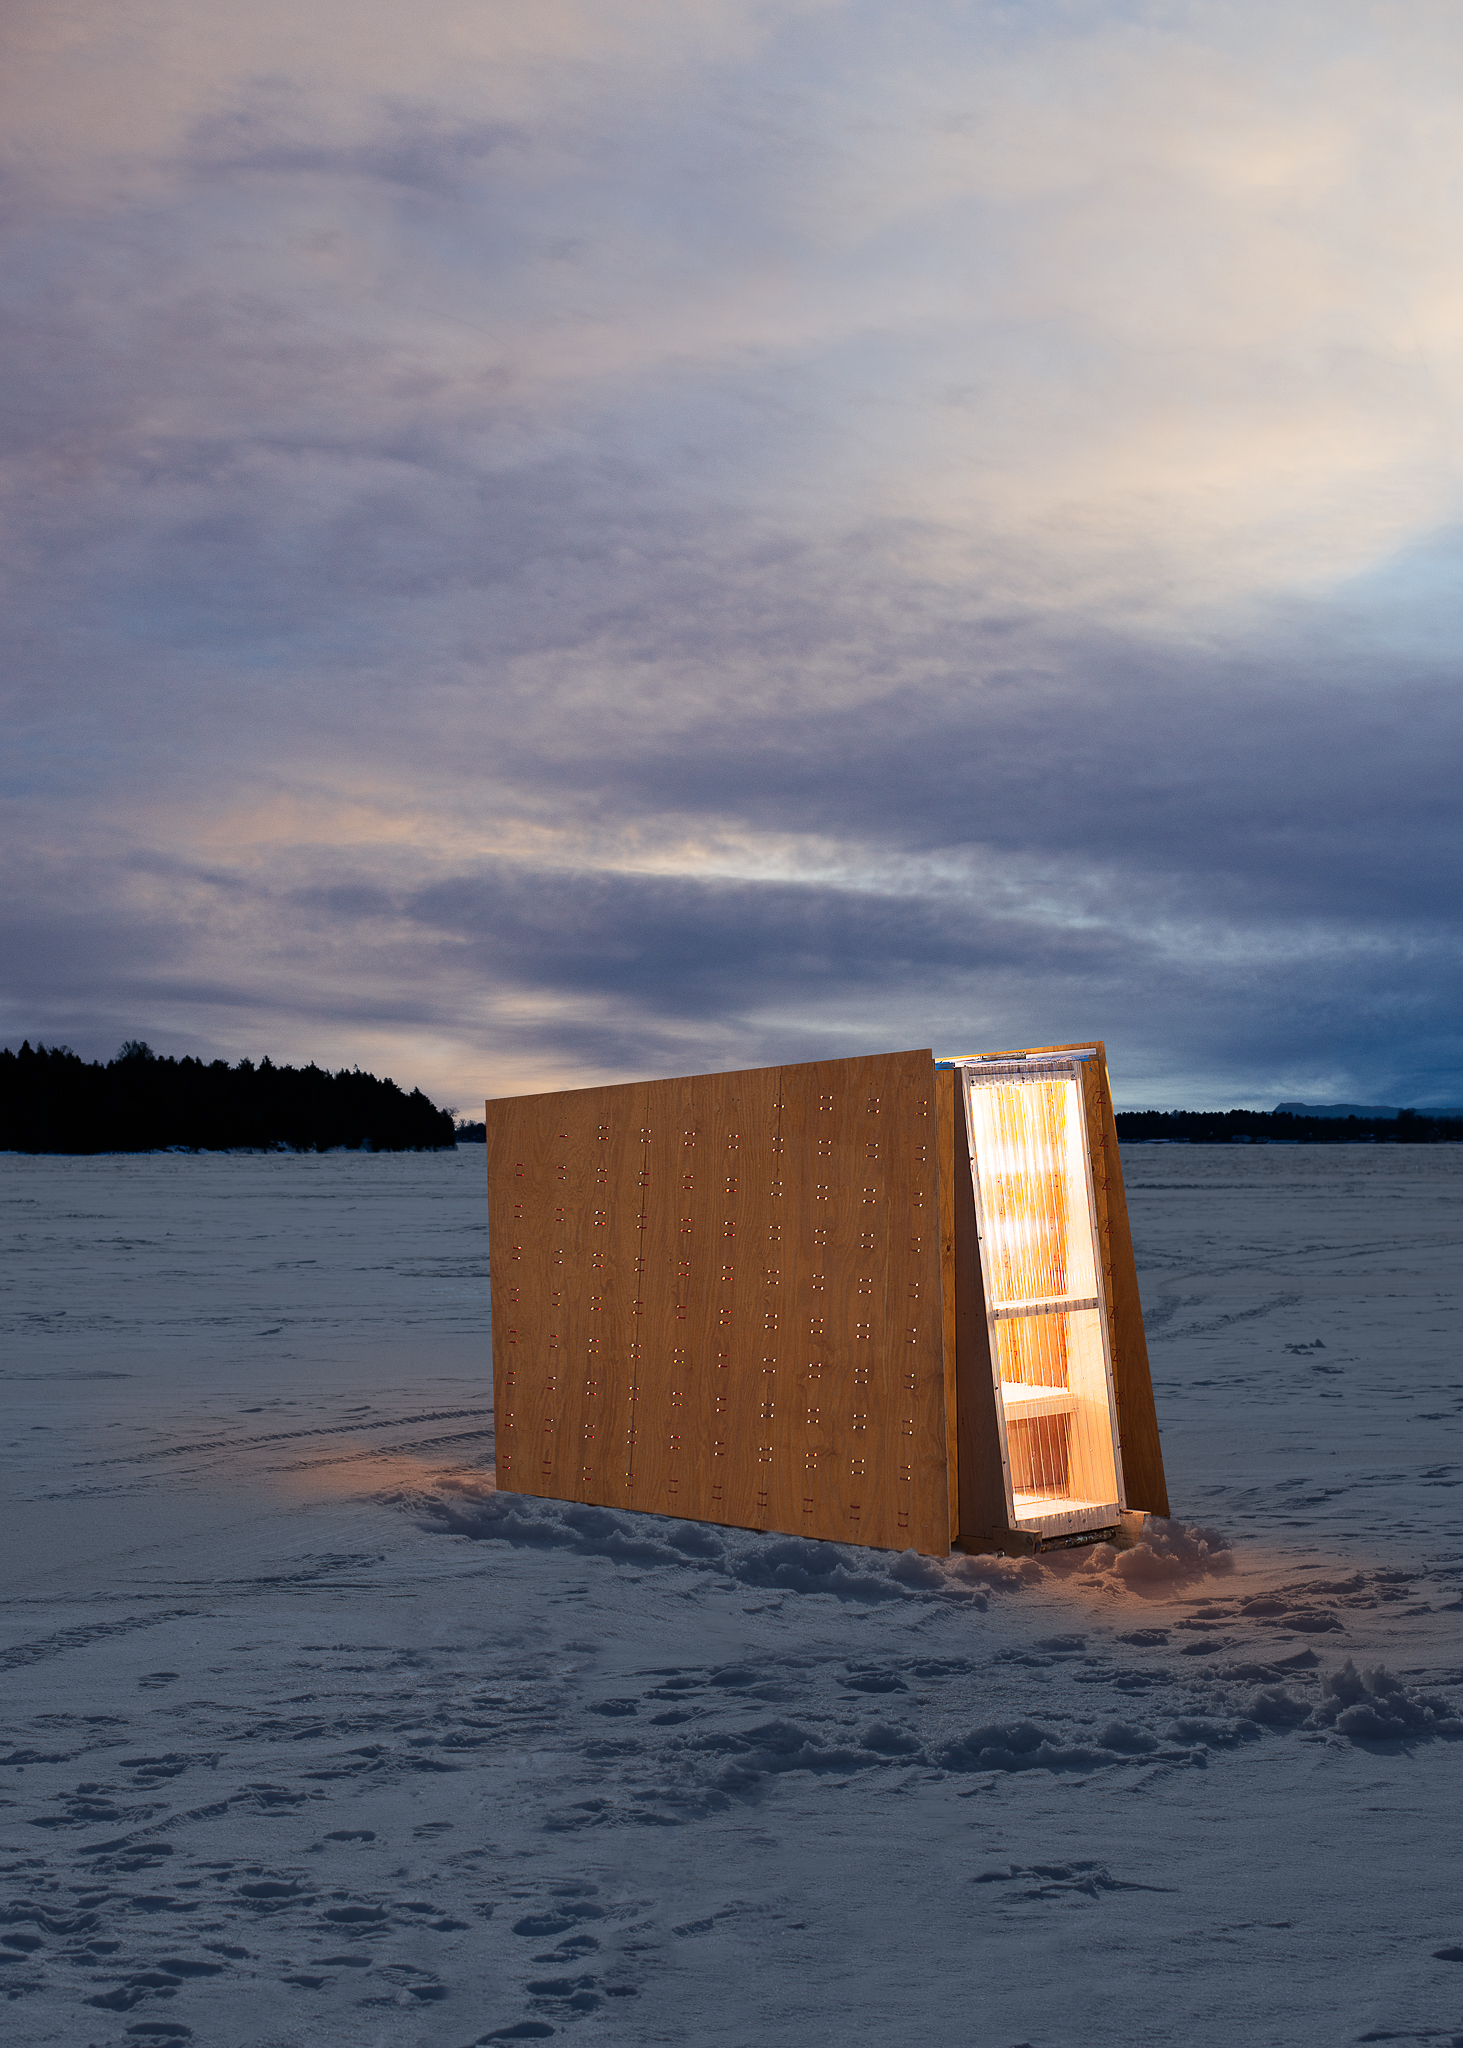 Same view of the Ice Ark, but as it would appear out on the lake at dusk.